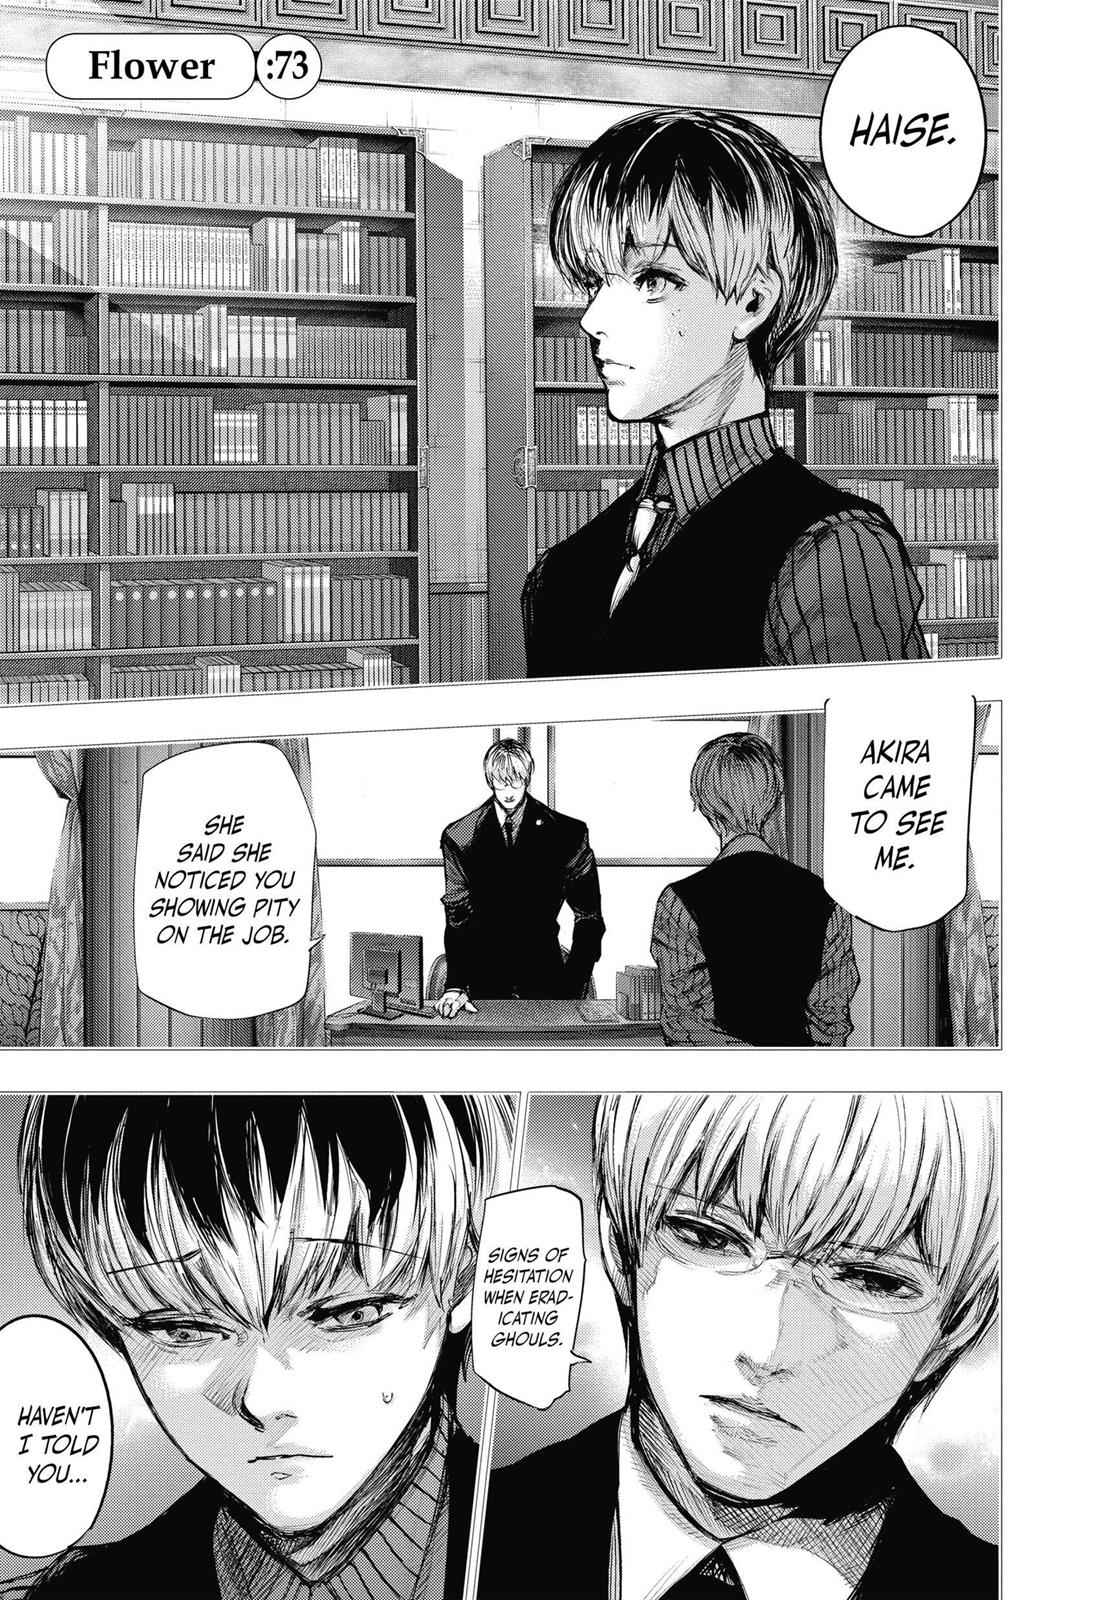 Tokyo Ghoul:re Chapter 73 Page 1